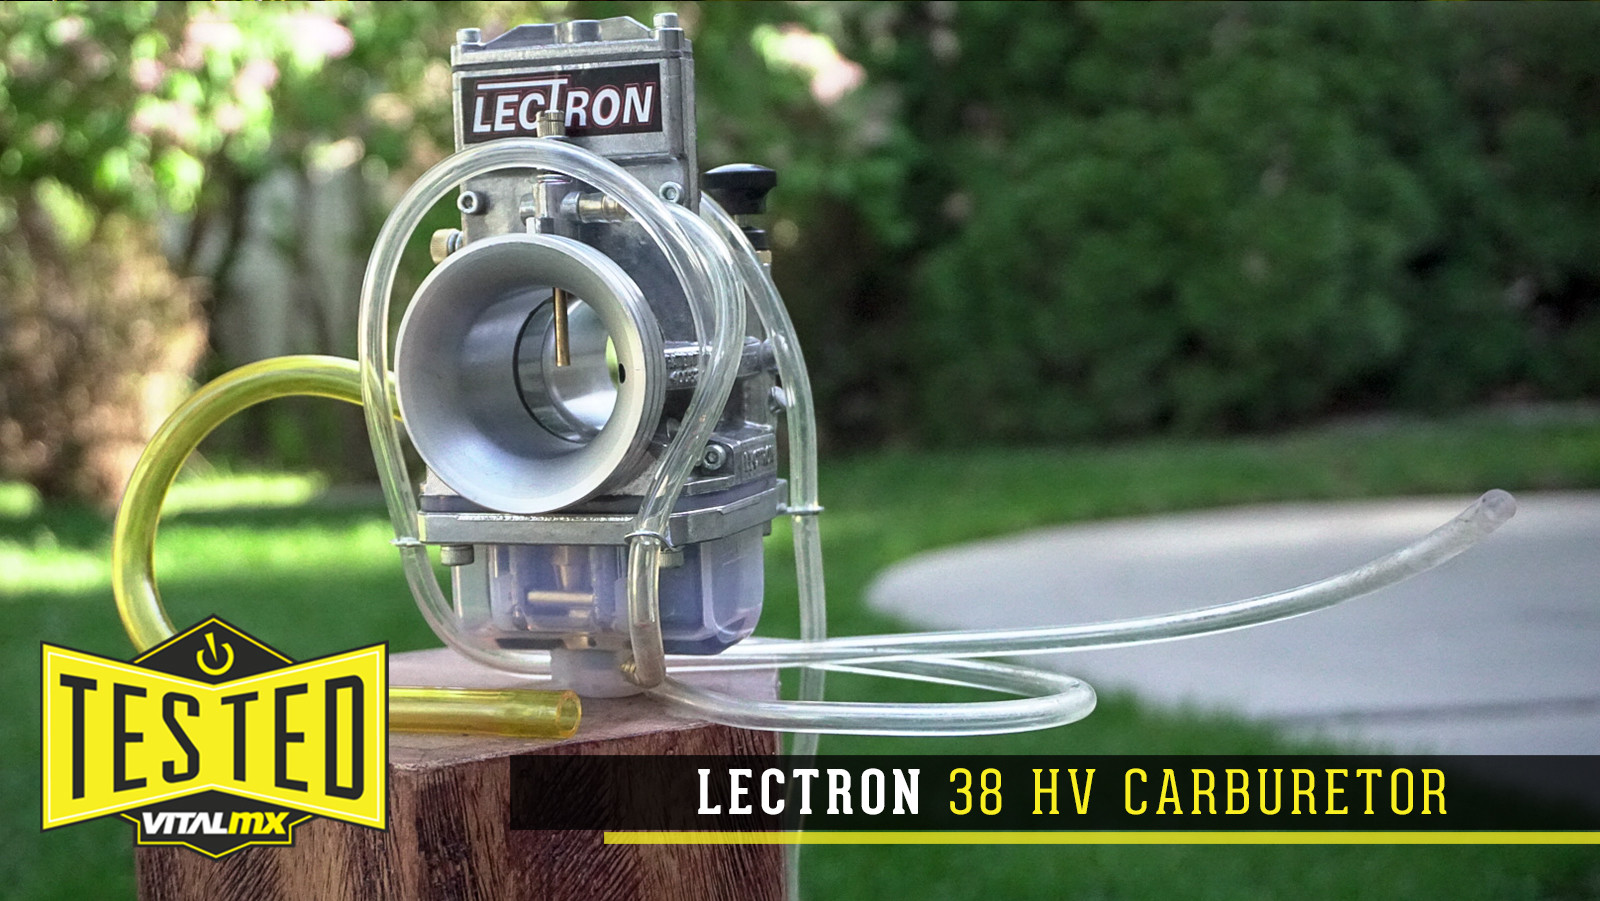 Tested: Lectron 38 HV Carburetor